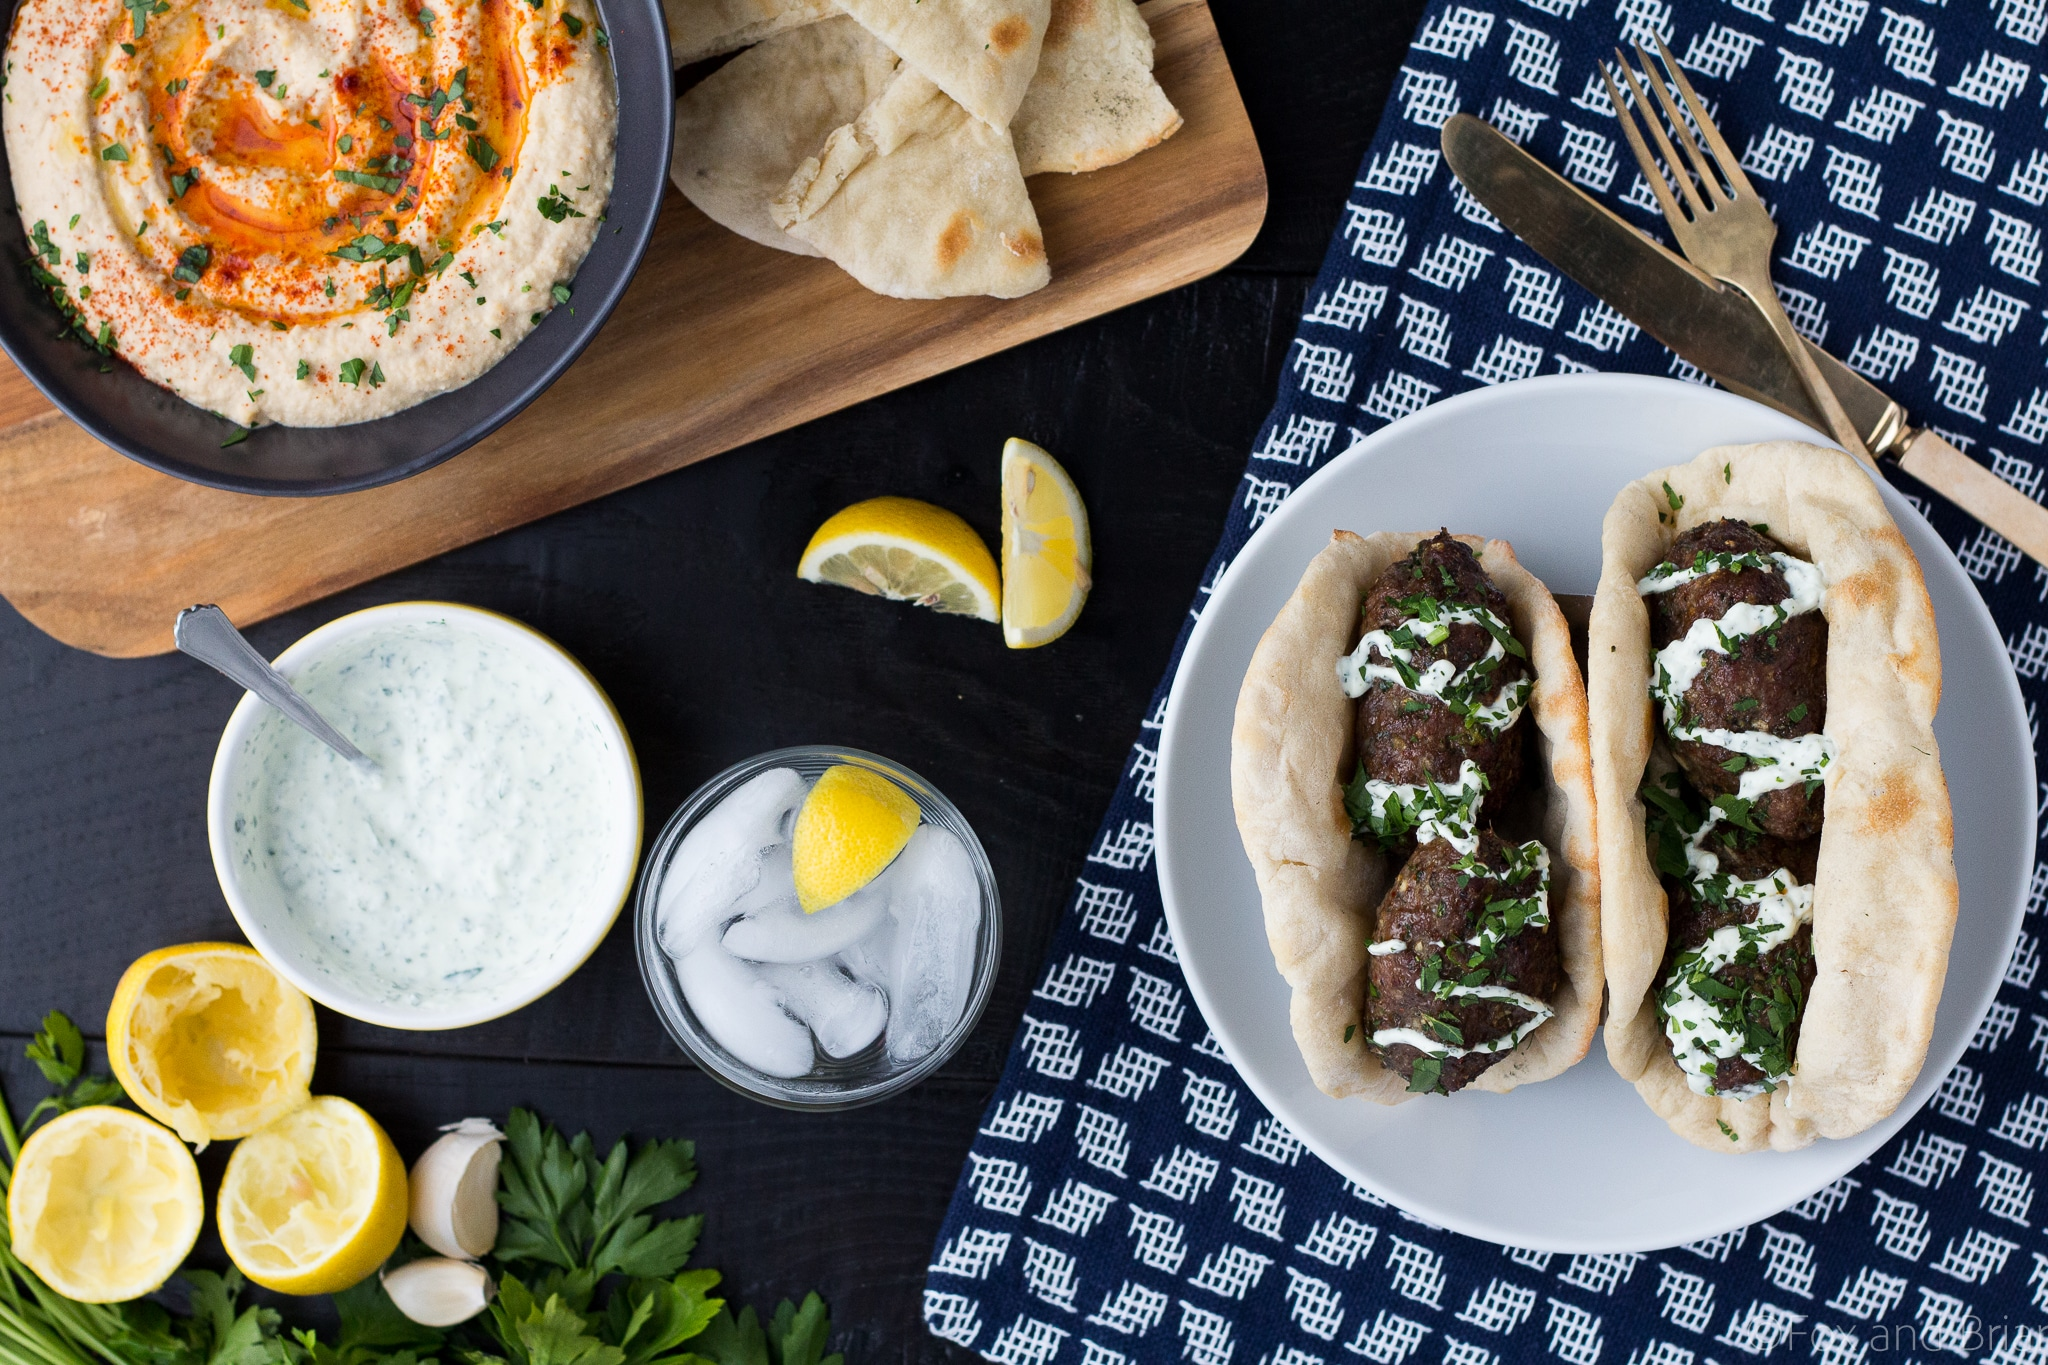 These Grilled Lamb Kofta Kebabs are spiced middle eastern meatballs that you can grill or bake in the oven!